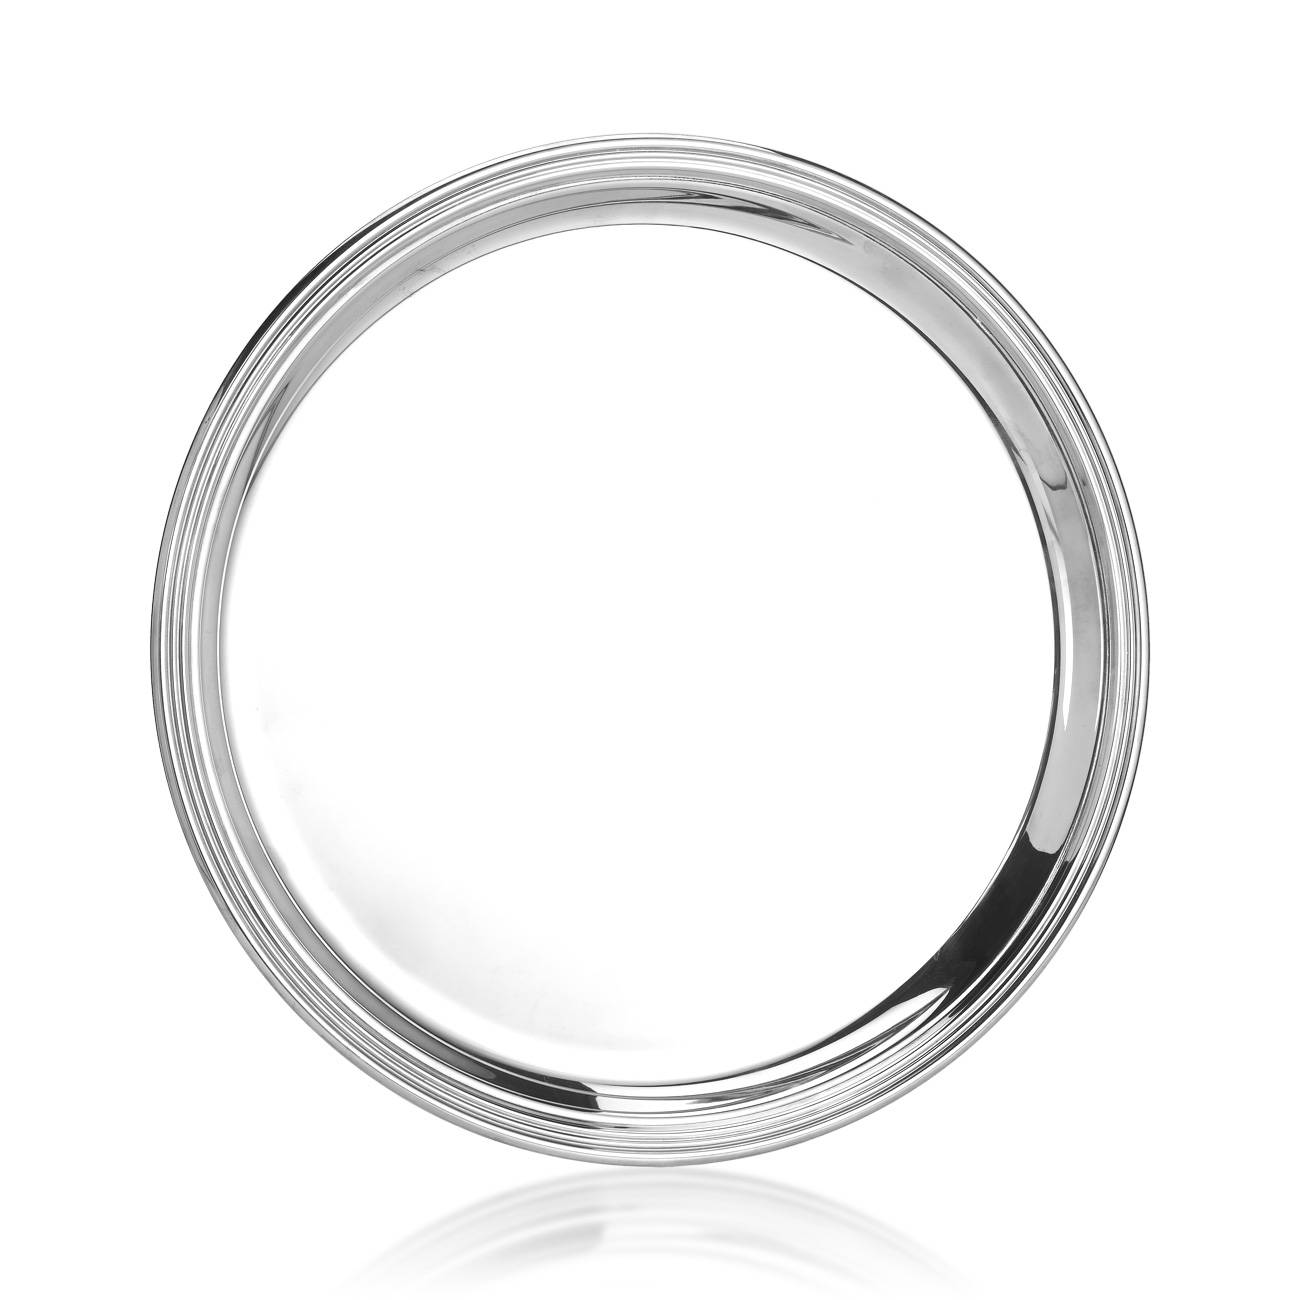 Michael C. Fina English Silver Plated Round Tray